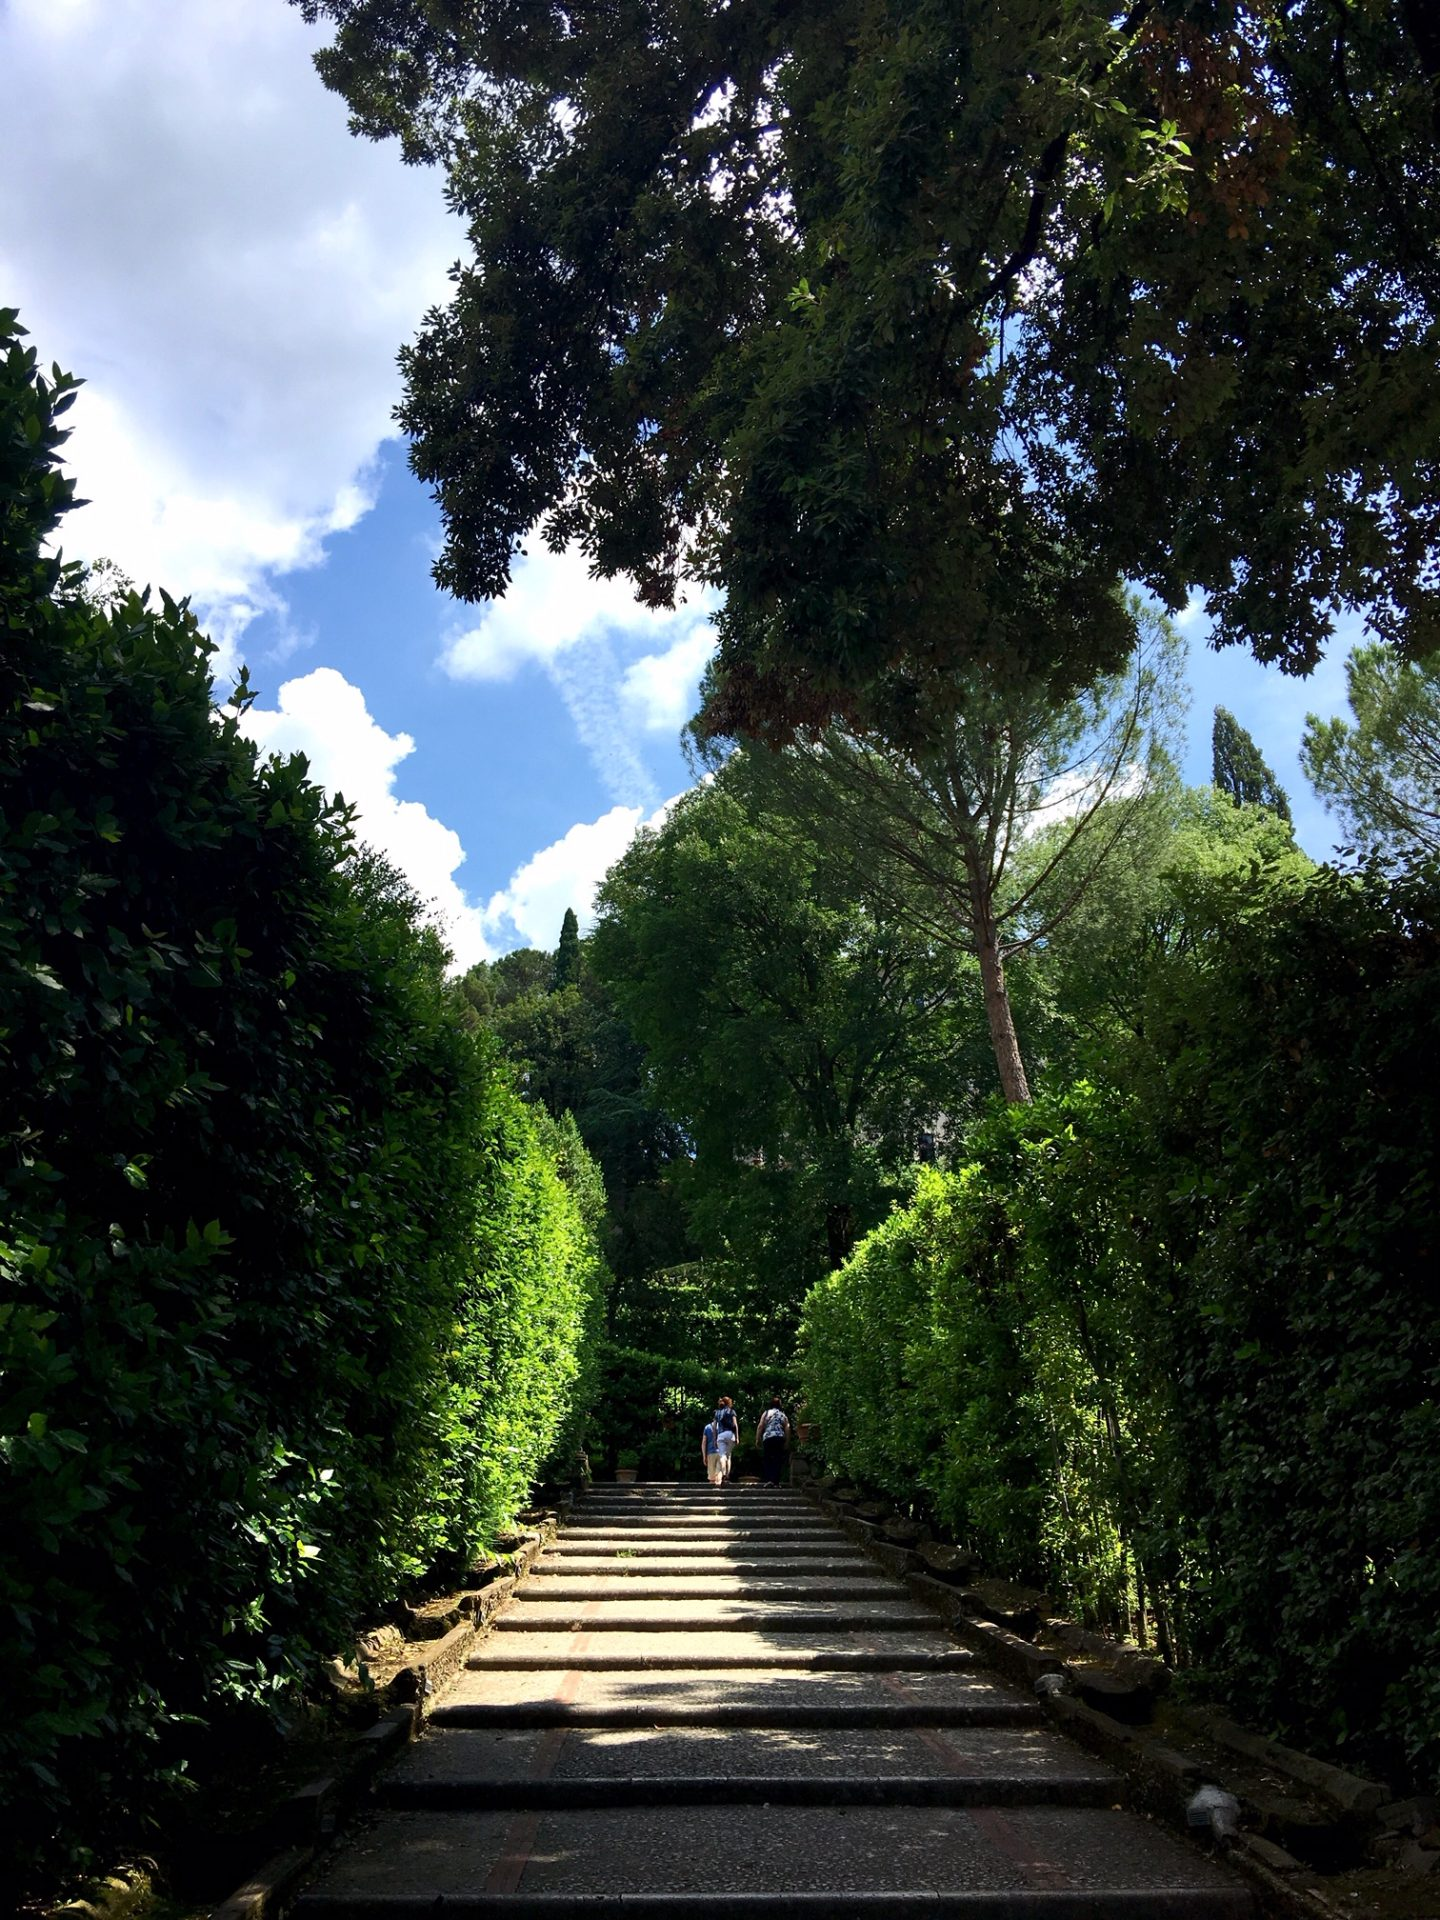 steep pathways work their way down into the gardens at Villa d'Este in Tivoli